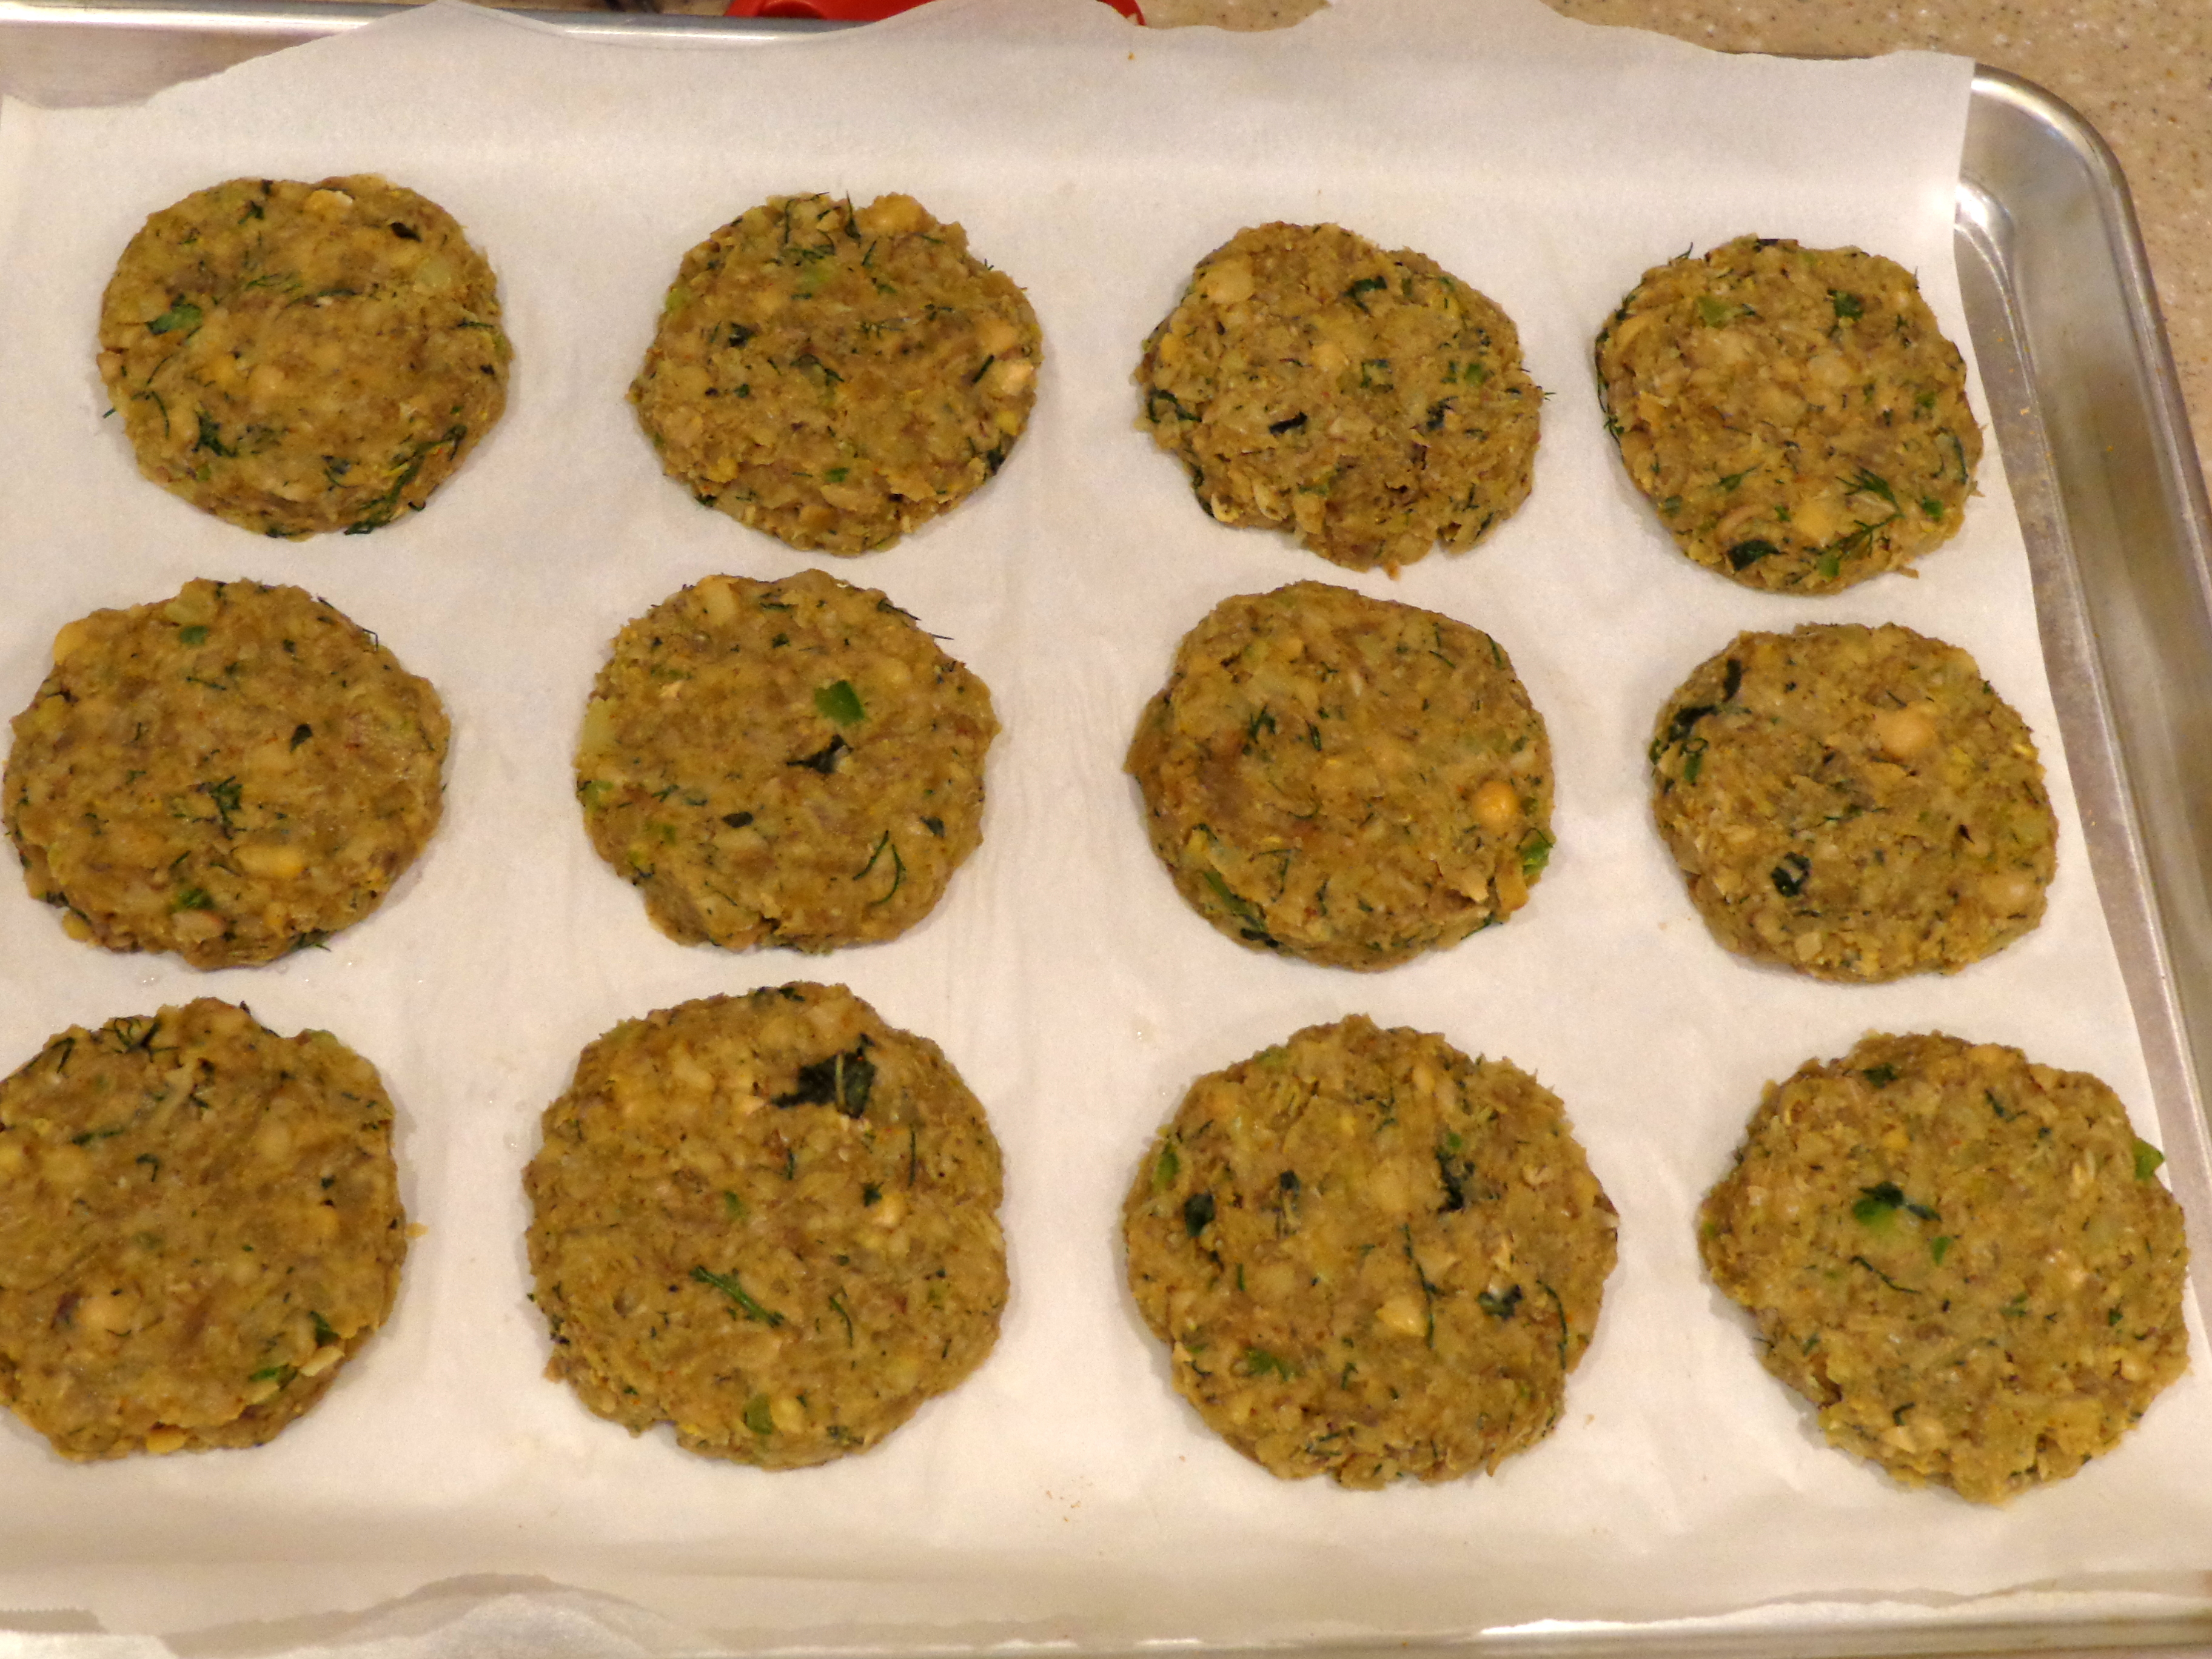 baked veggie patties/cutlets with sprouted chickpeas, dill and